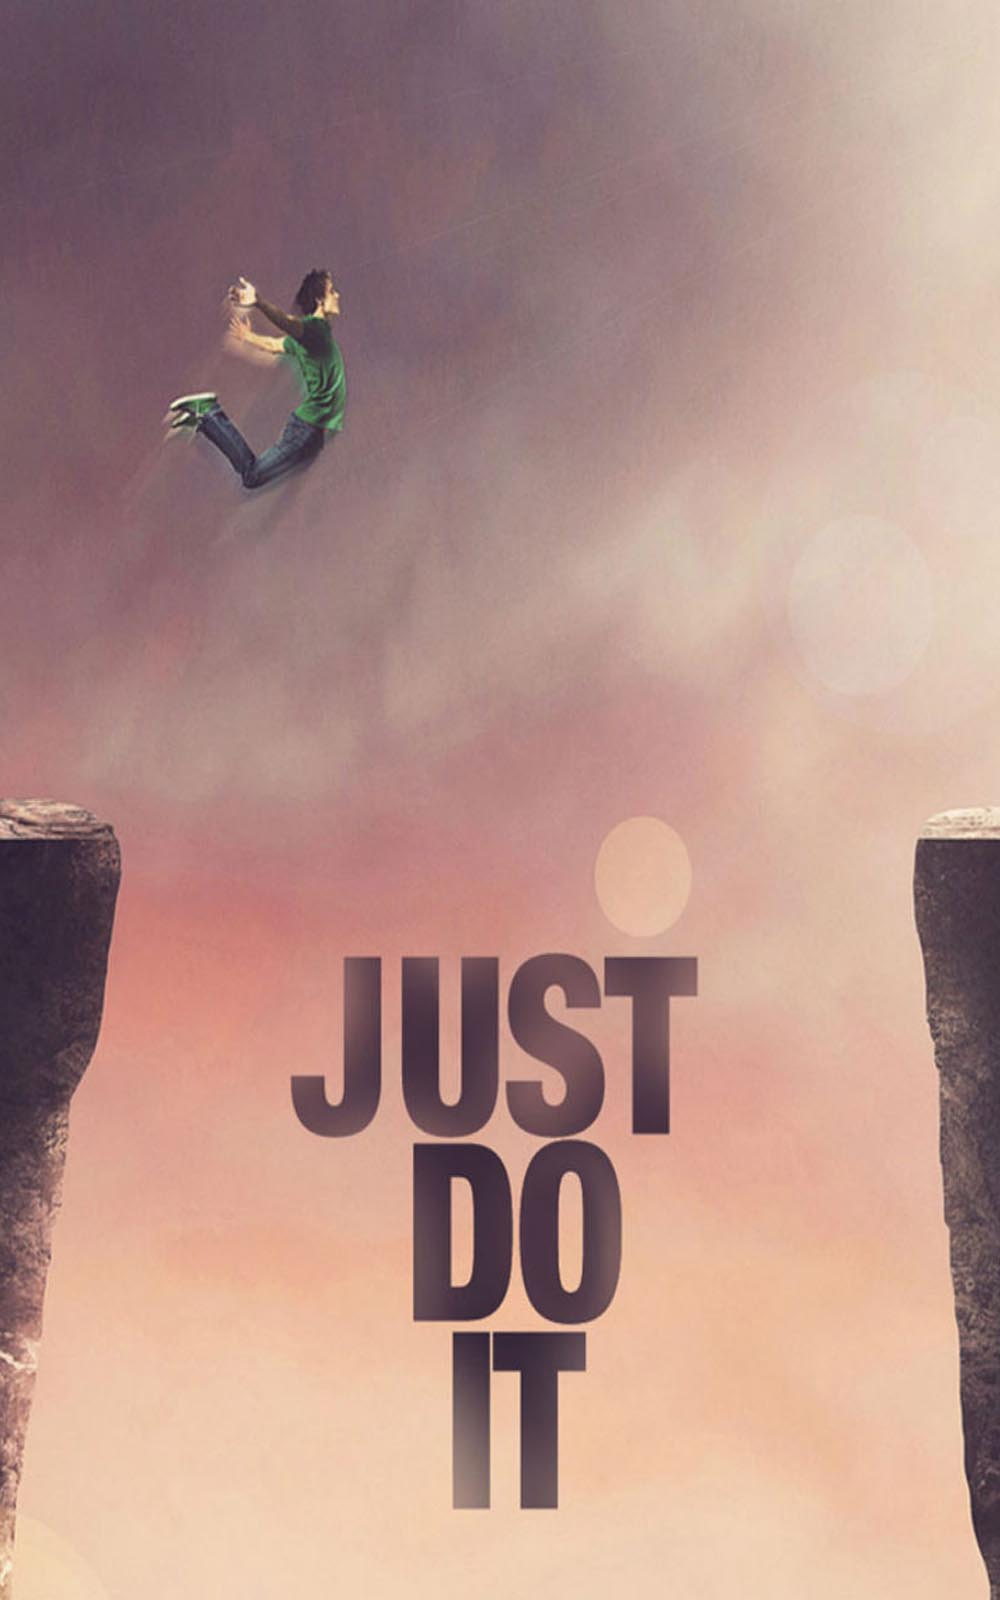 Just Do It Wallpaper: Download Free HD Mobile Wallpapers